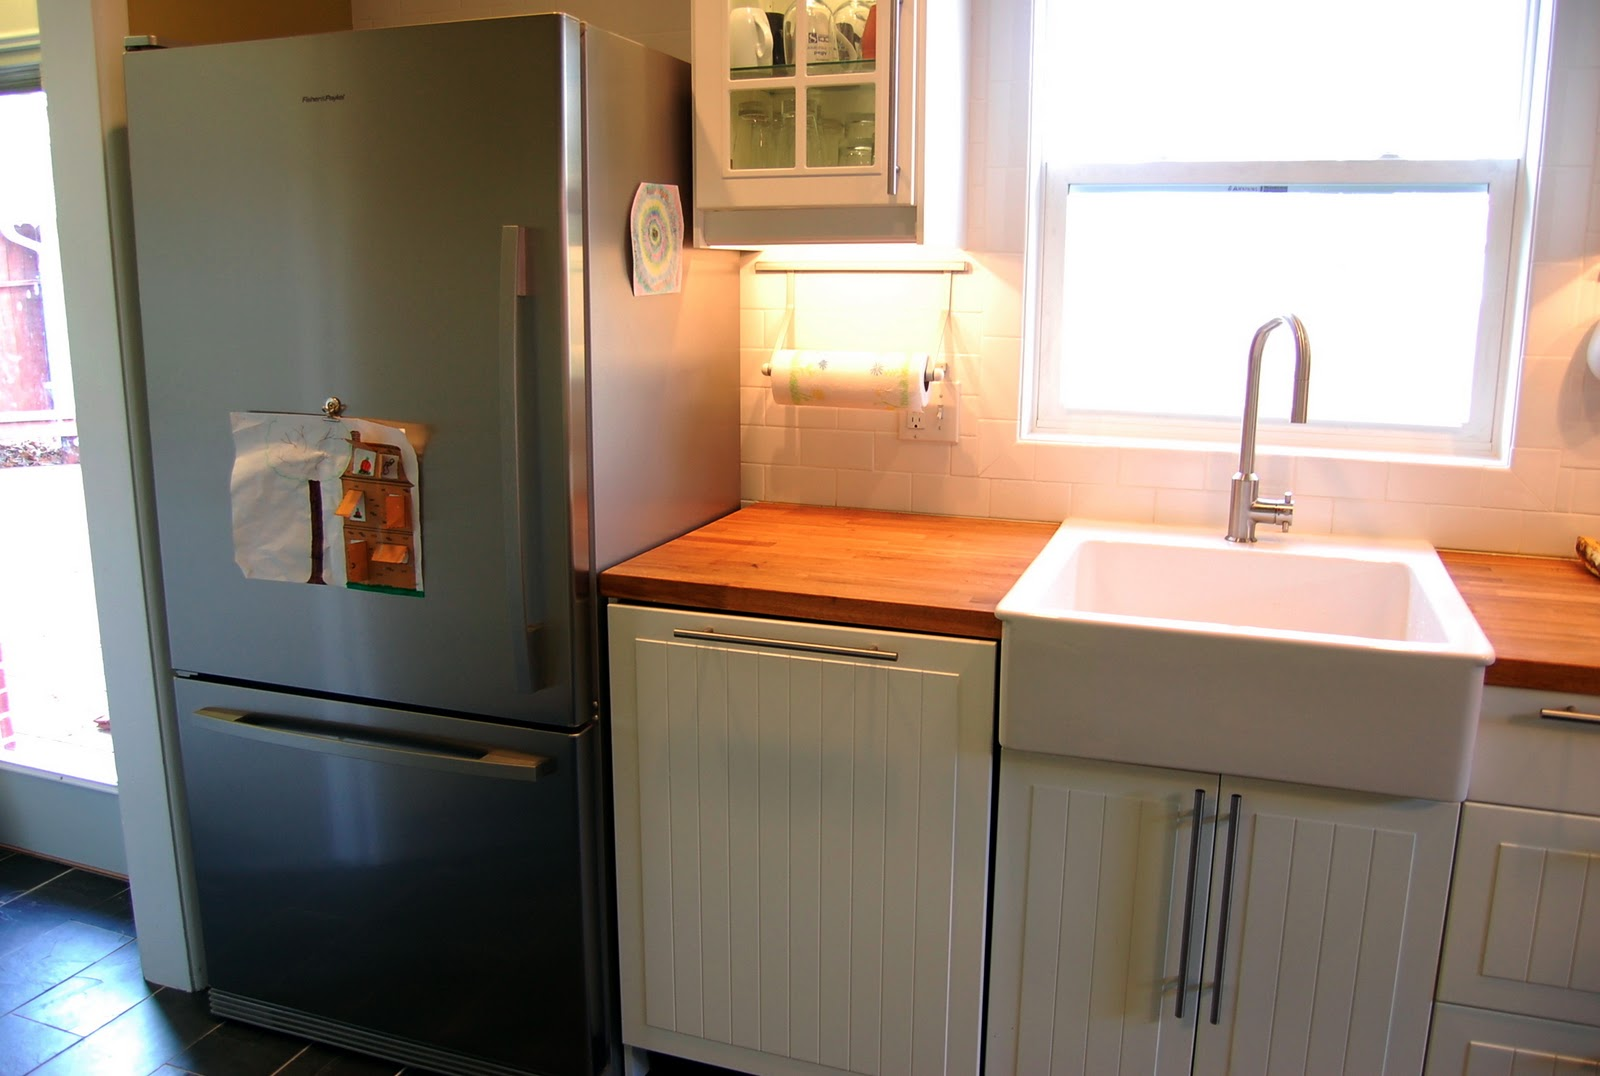 Small Basement Kitchen Beard Pigtails Kitchen Reboot 7 Gassy Icebox